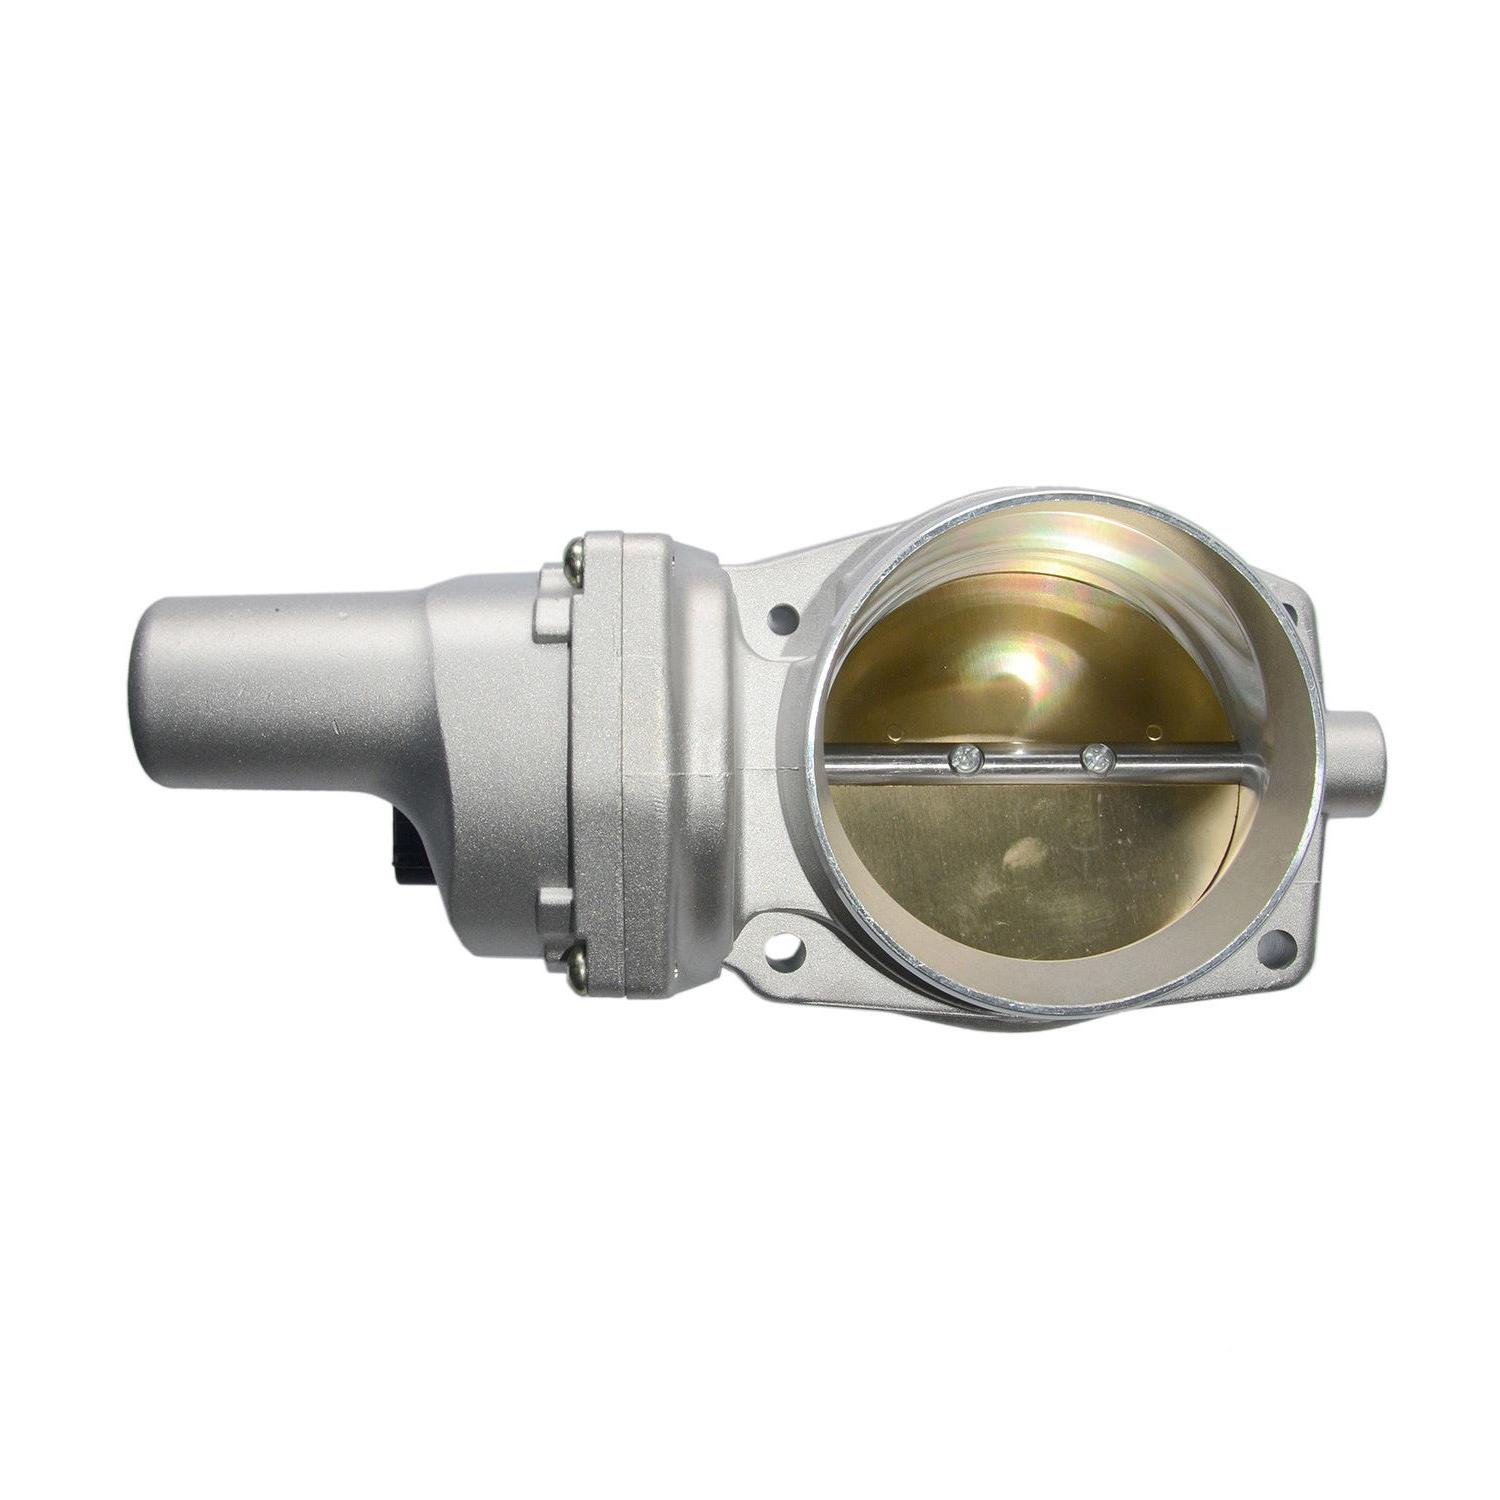 90MM Electronic Throttle Body For GM LS3 LS7 L99 Engine Corvette C6//Z06 Camaro SS G8